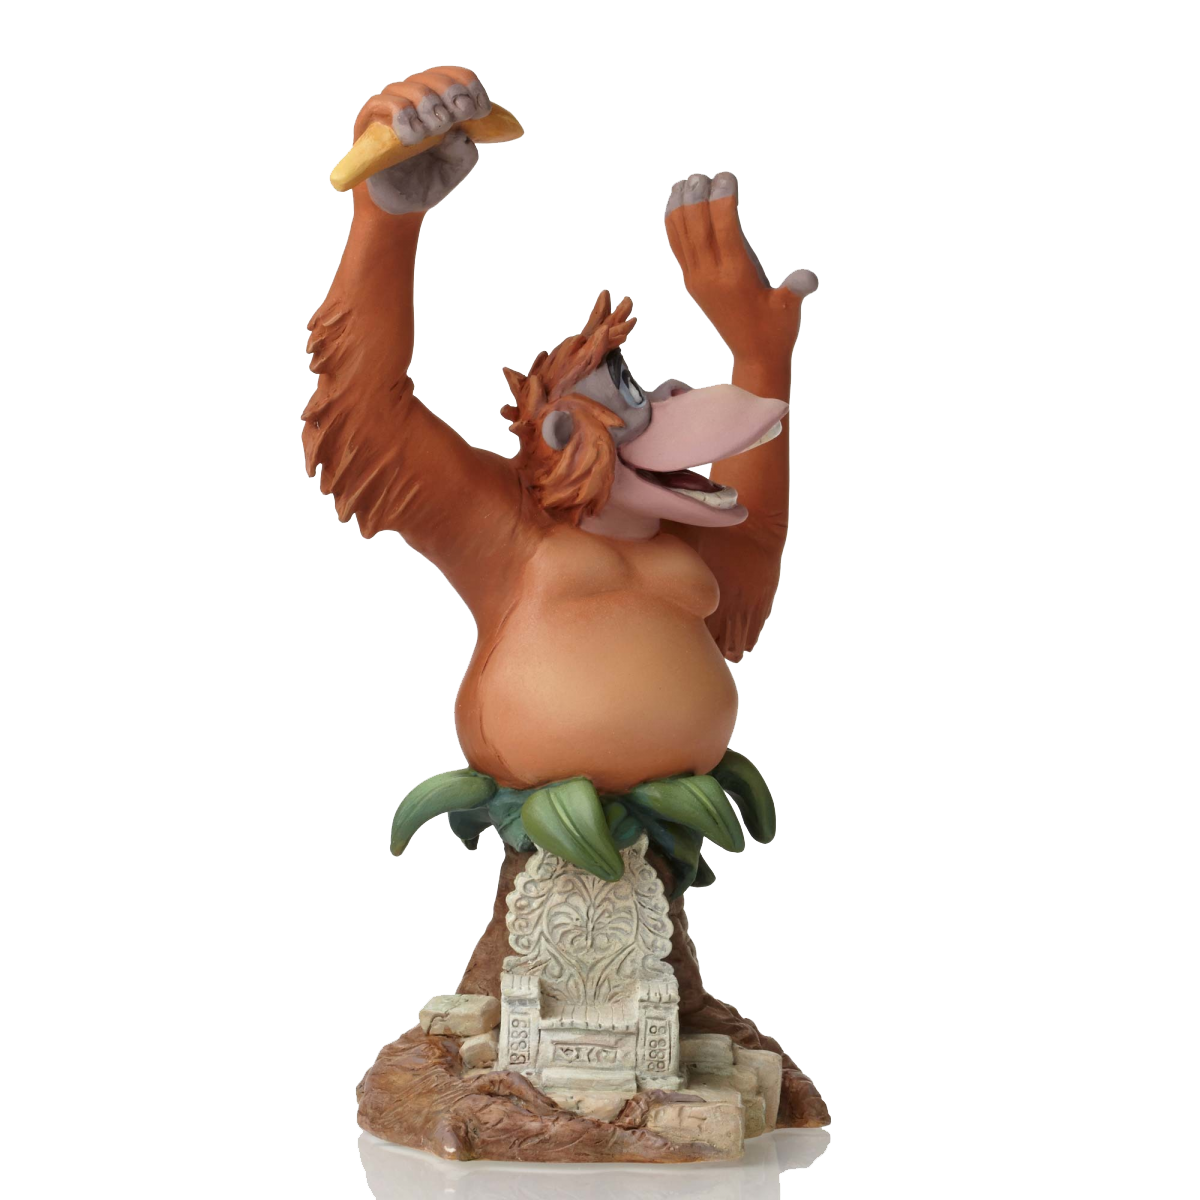 King Louie Free Download PNG Image